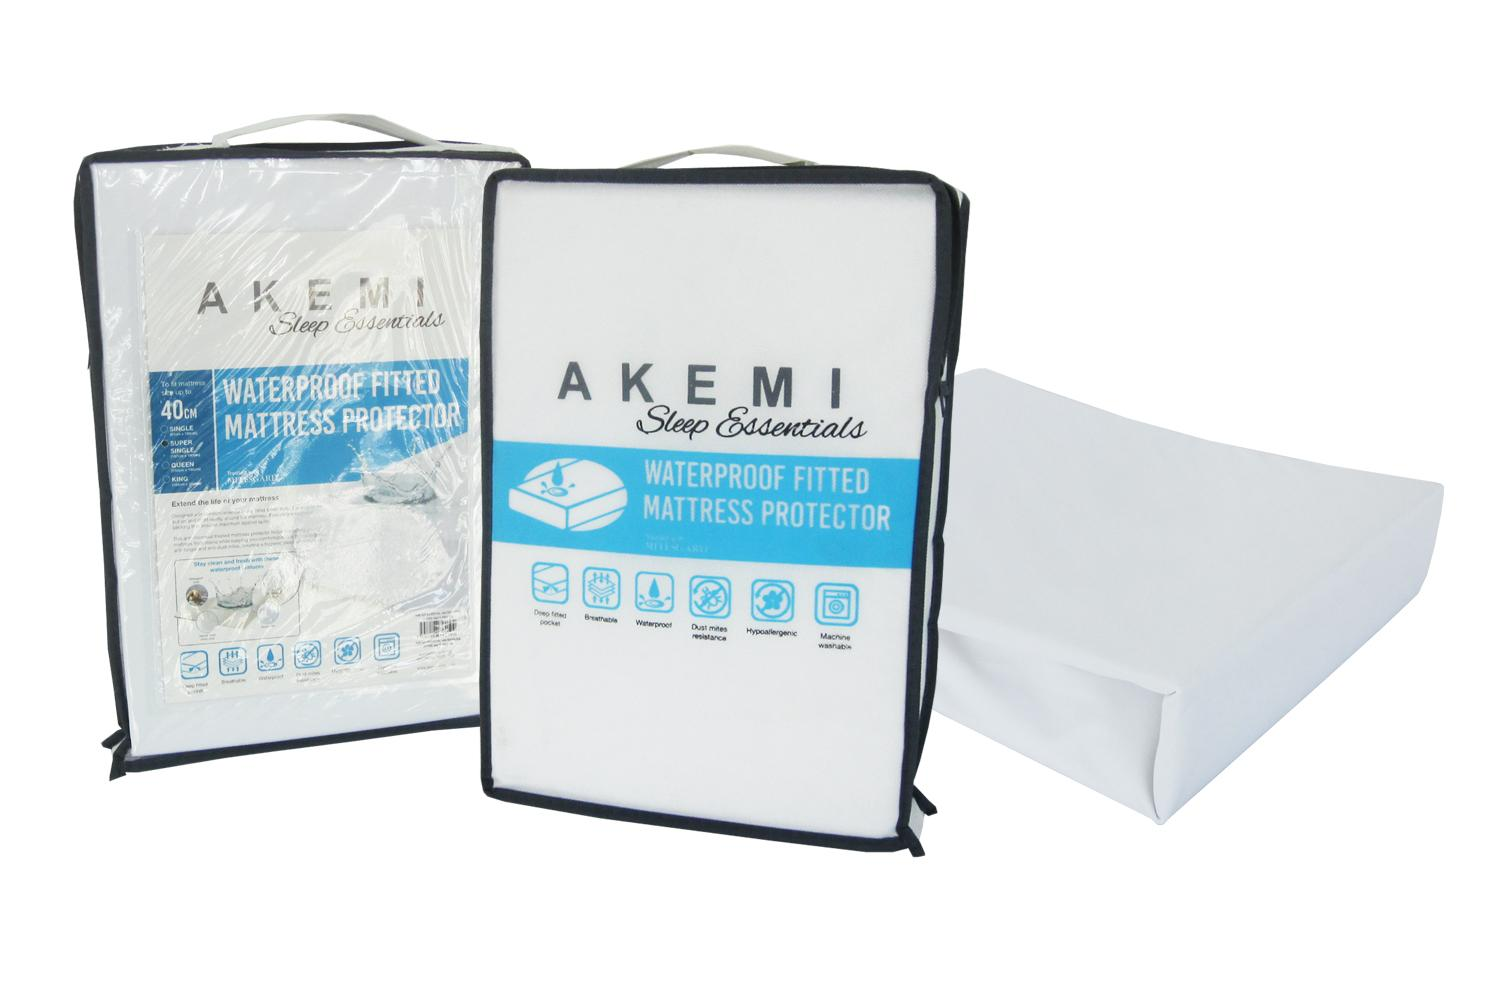 Sale Akemi Sleep Essentials Waterproof Fitted Mattress Protector Akemi Original